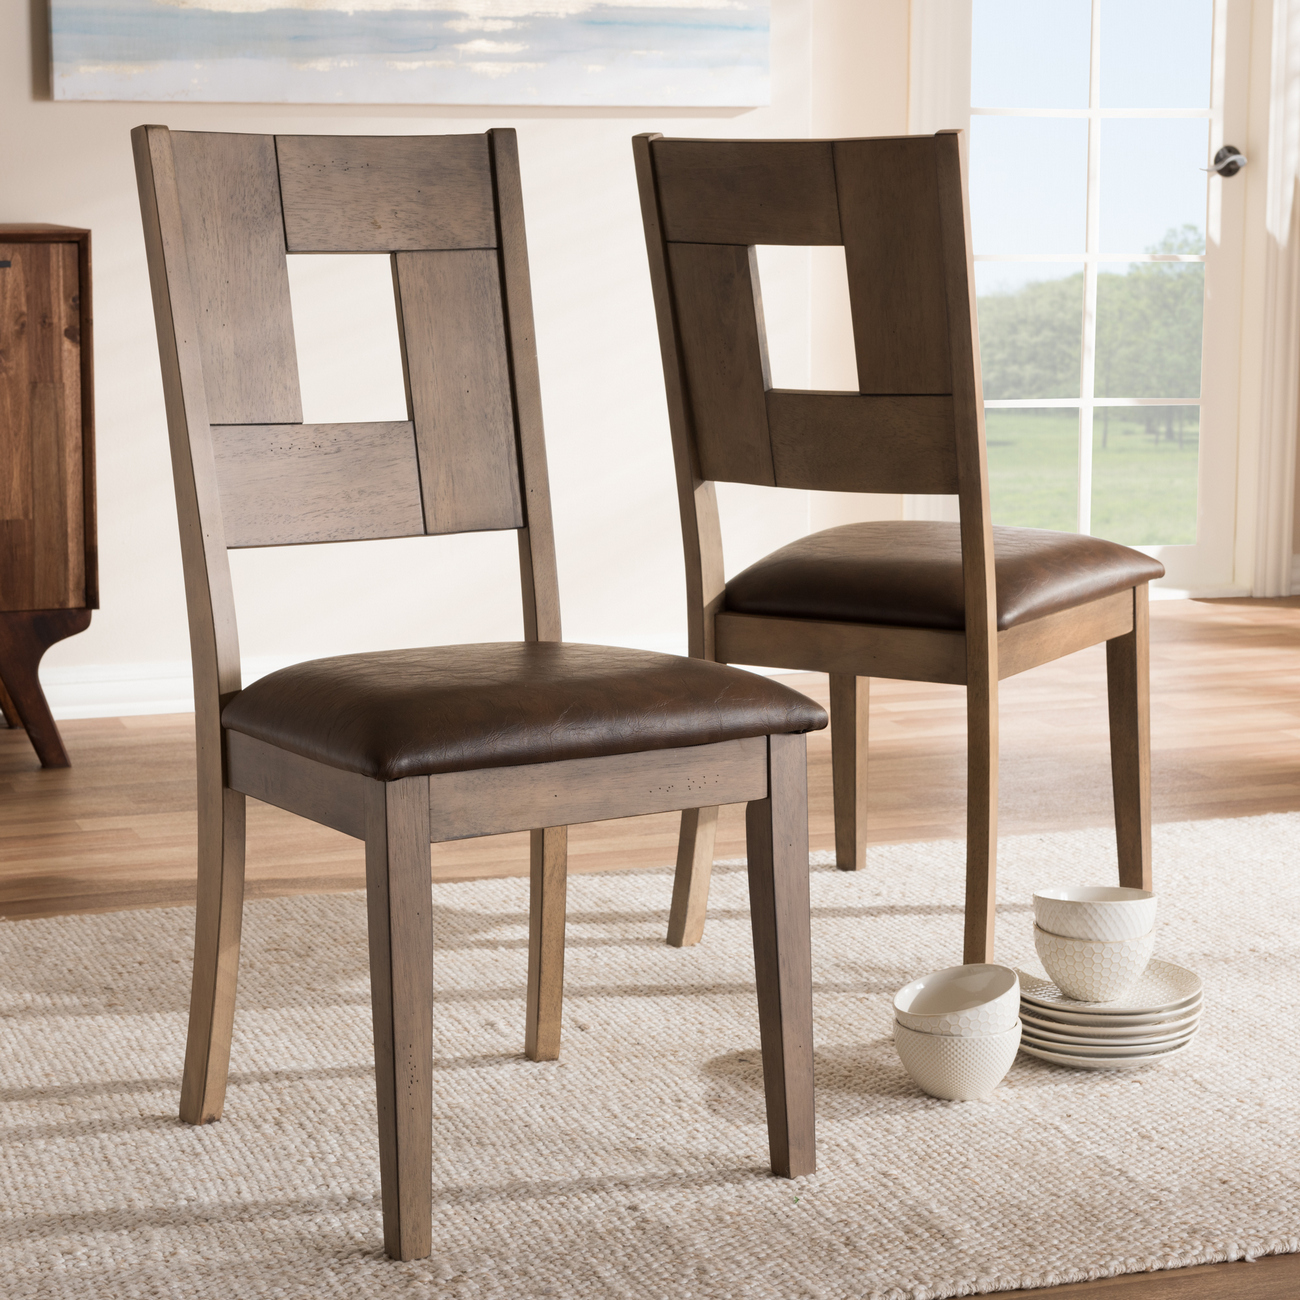 Baxton Studio Gillian Shabby Chic Country Cottage Weathered Grey Finishing Wood & Distressed Dark Brown Faux Leather Upholstered Dining Side Chair Set (Set of 2) - ALR-15383-Dark Brown/Grey-DC